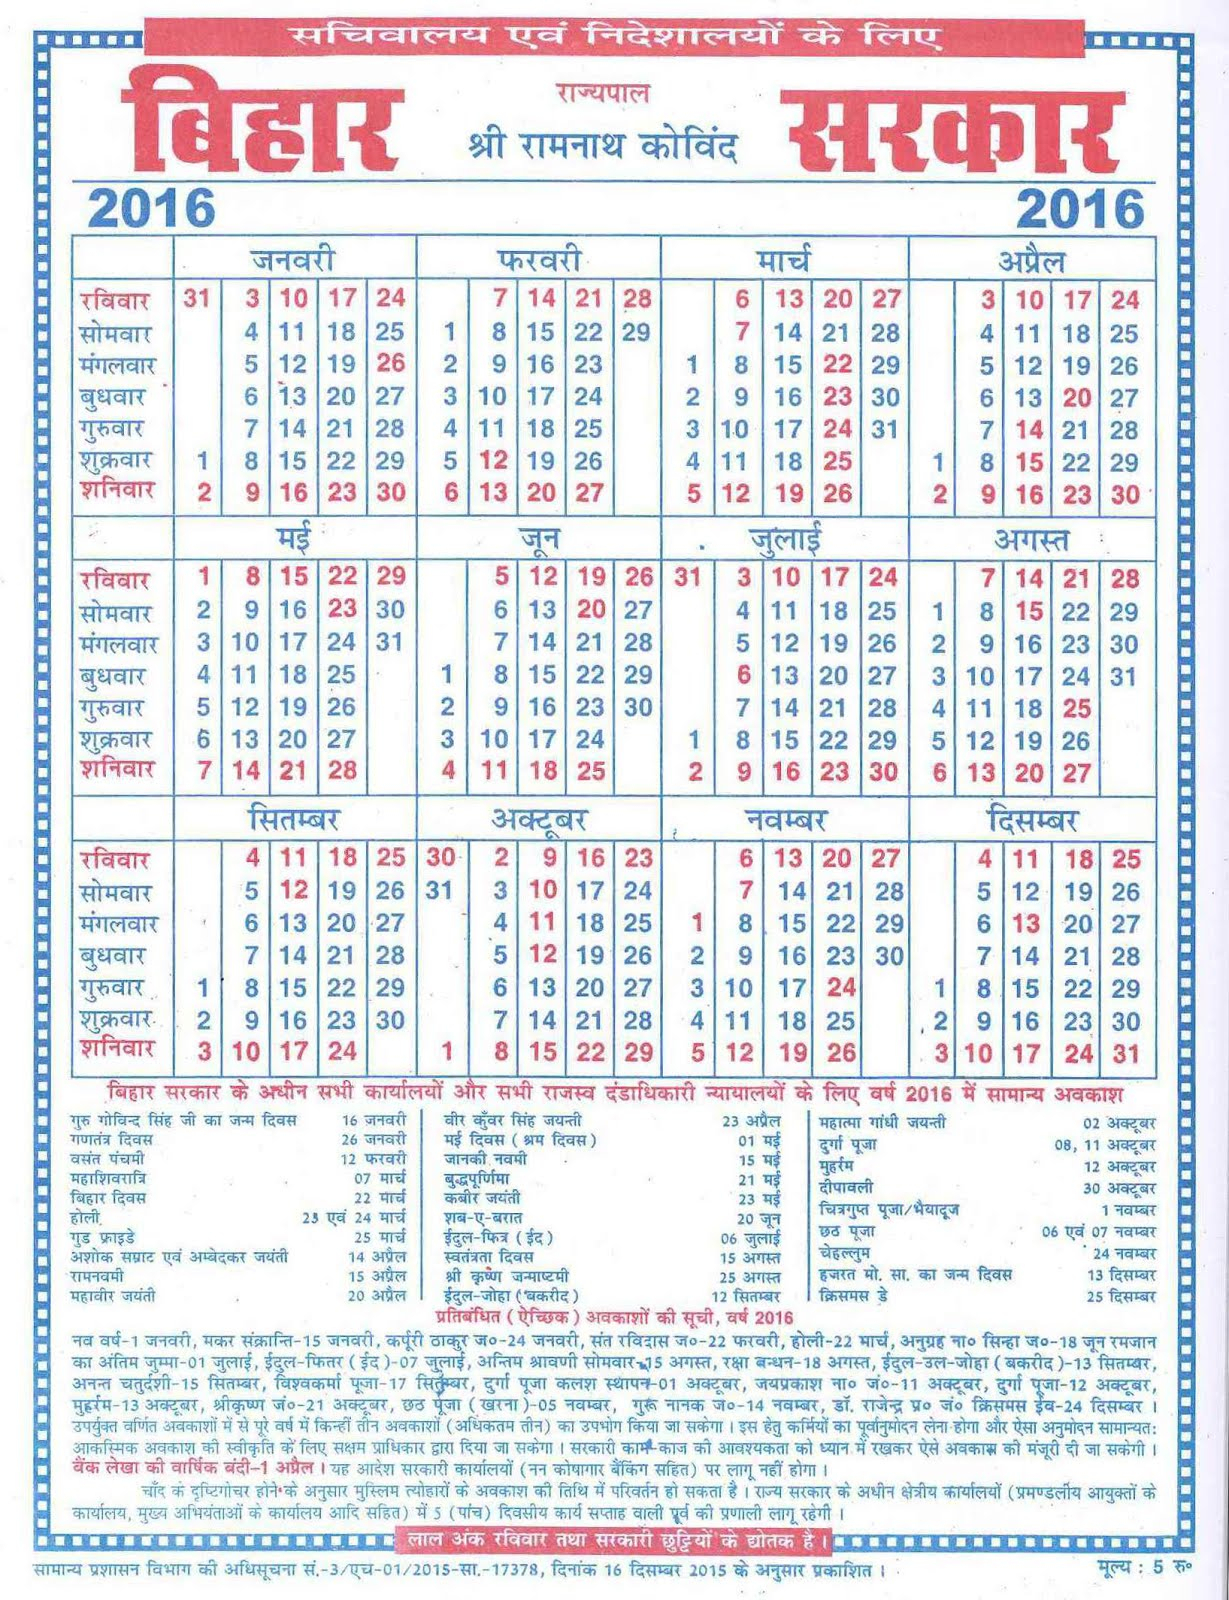 Bihar Government Calendar 2016 Download regarding Bihar Govt Calendar